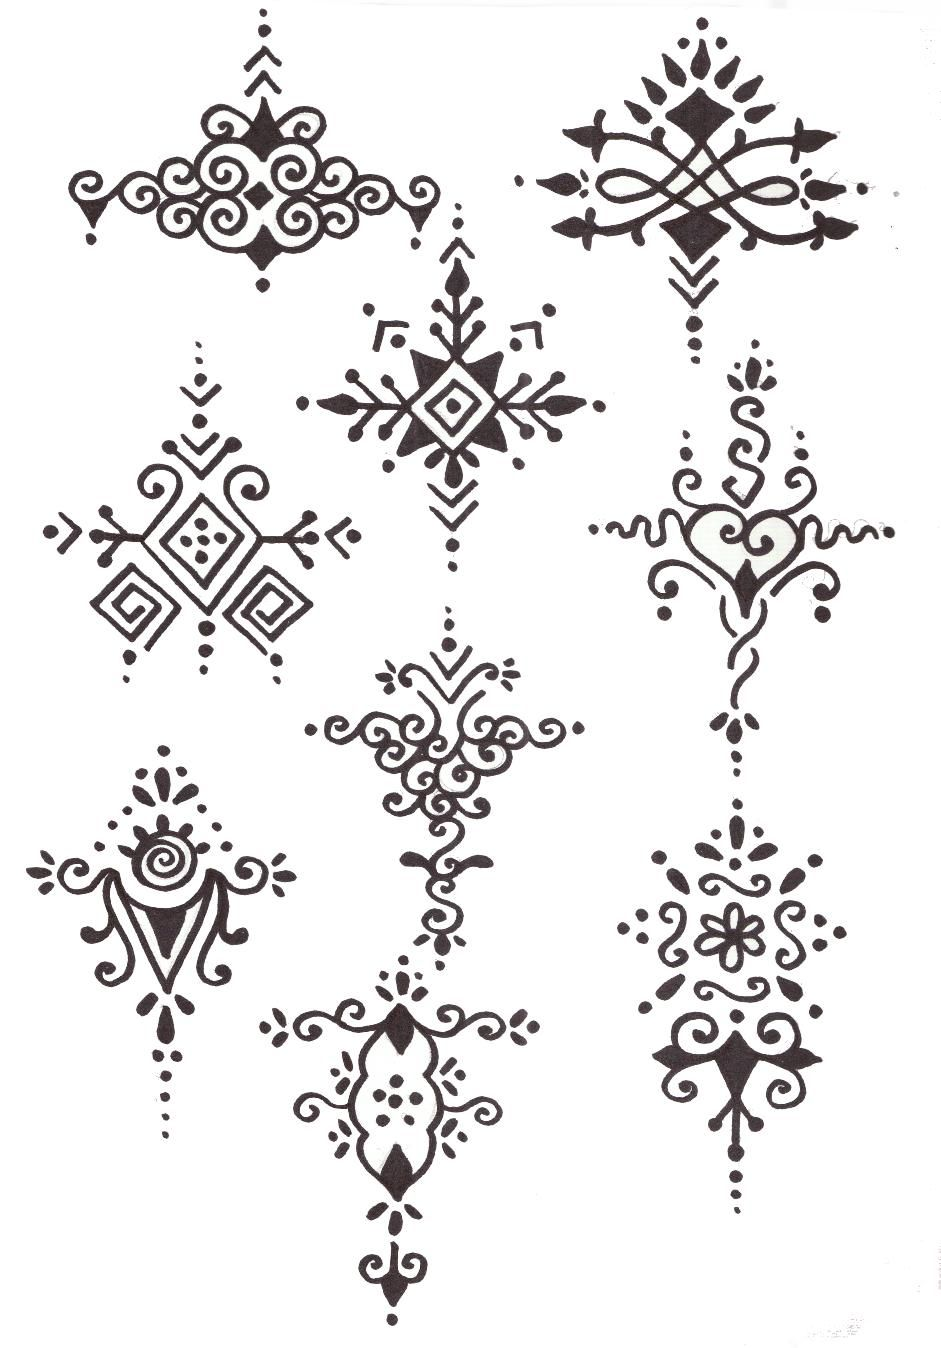 1000 ideas about traditional henna designs on pinterest traditional - Geography For Kids India Henna Designs To Go With My Henna Arm